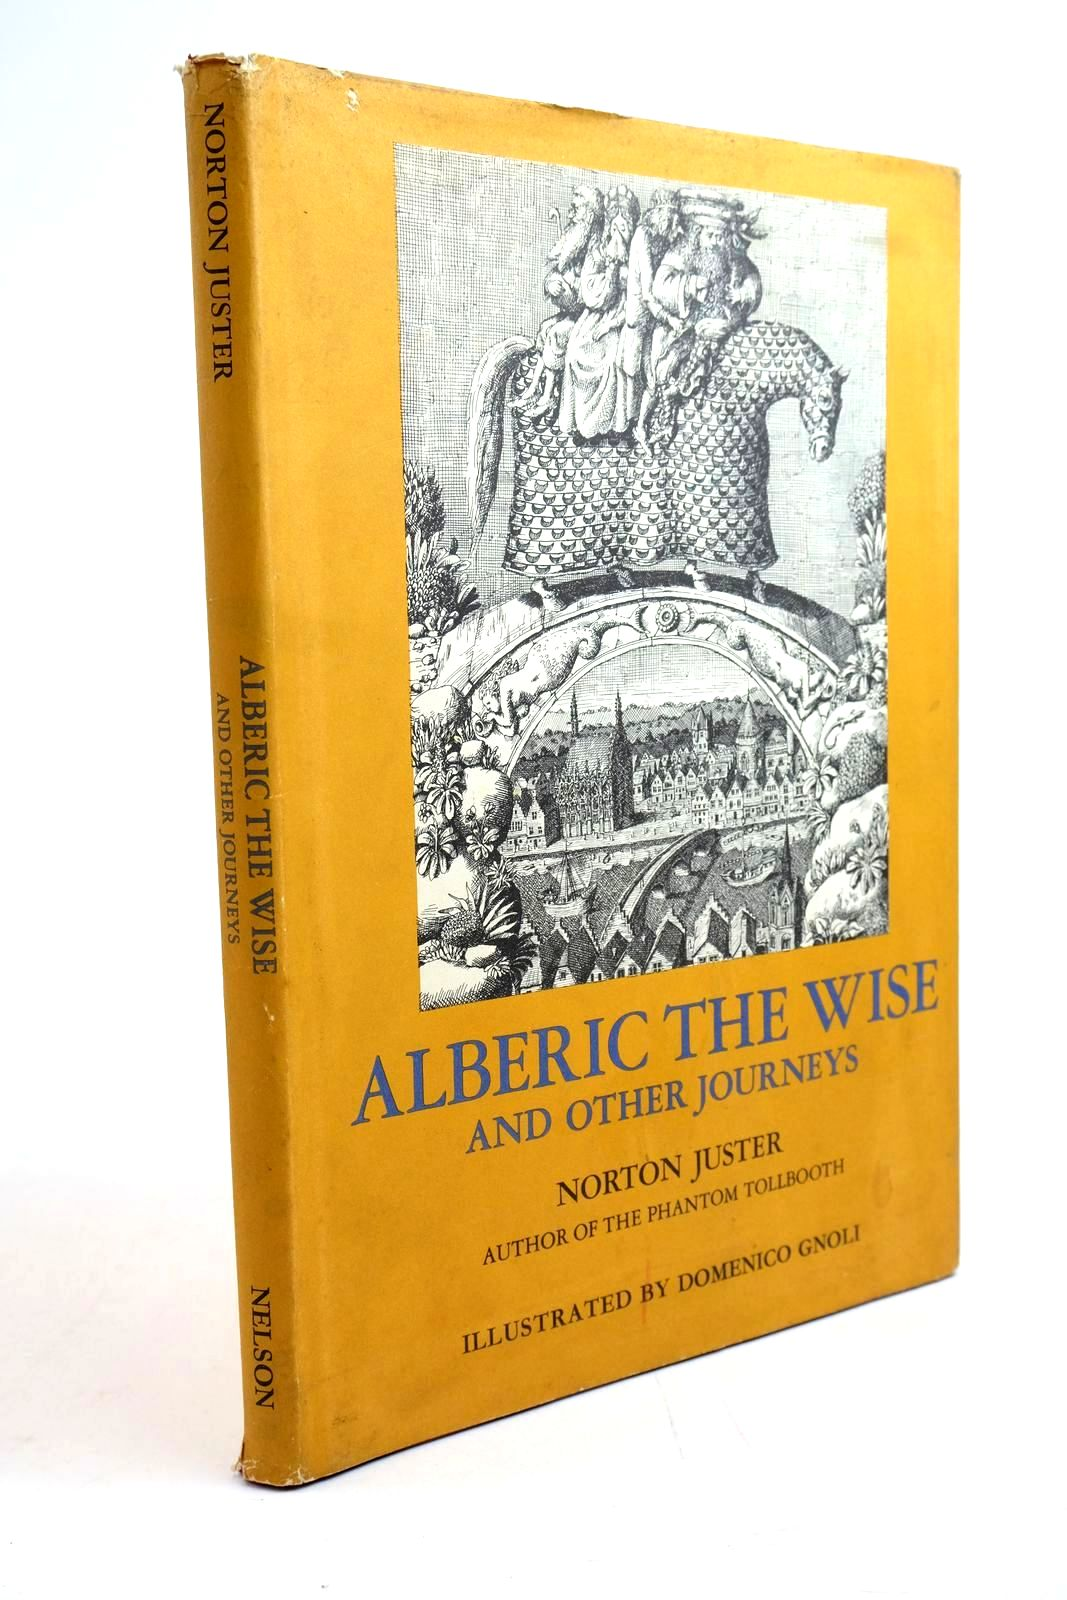 Photo of ALBERIC THE WISE AND OTHER JOURNEYS- Stock Number: 1321470